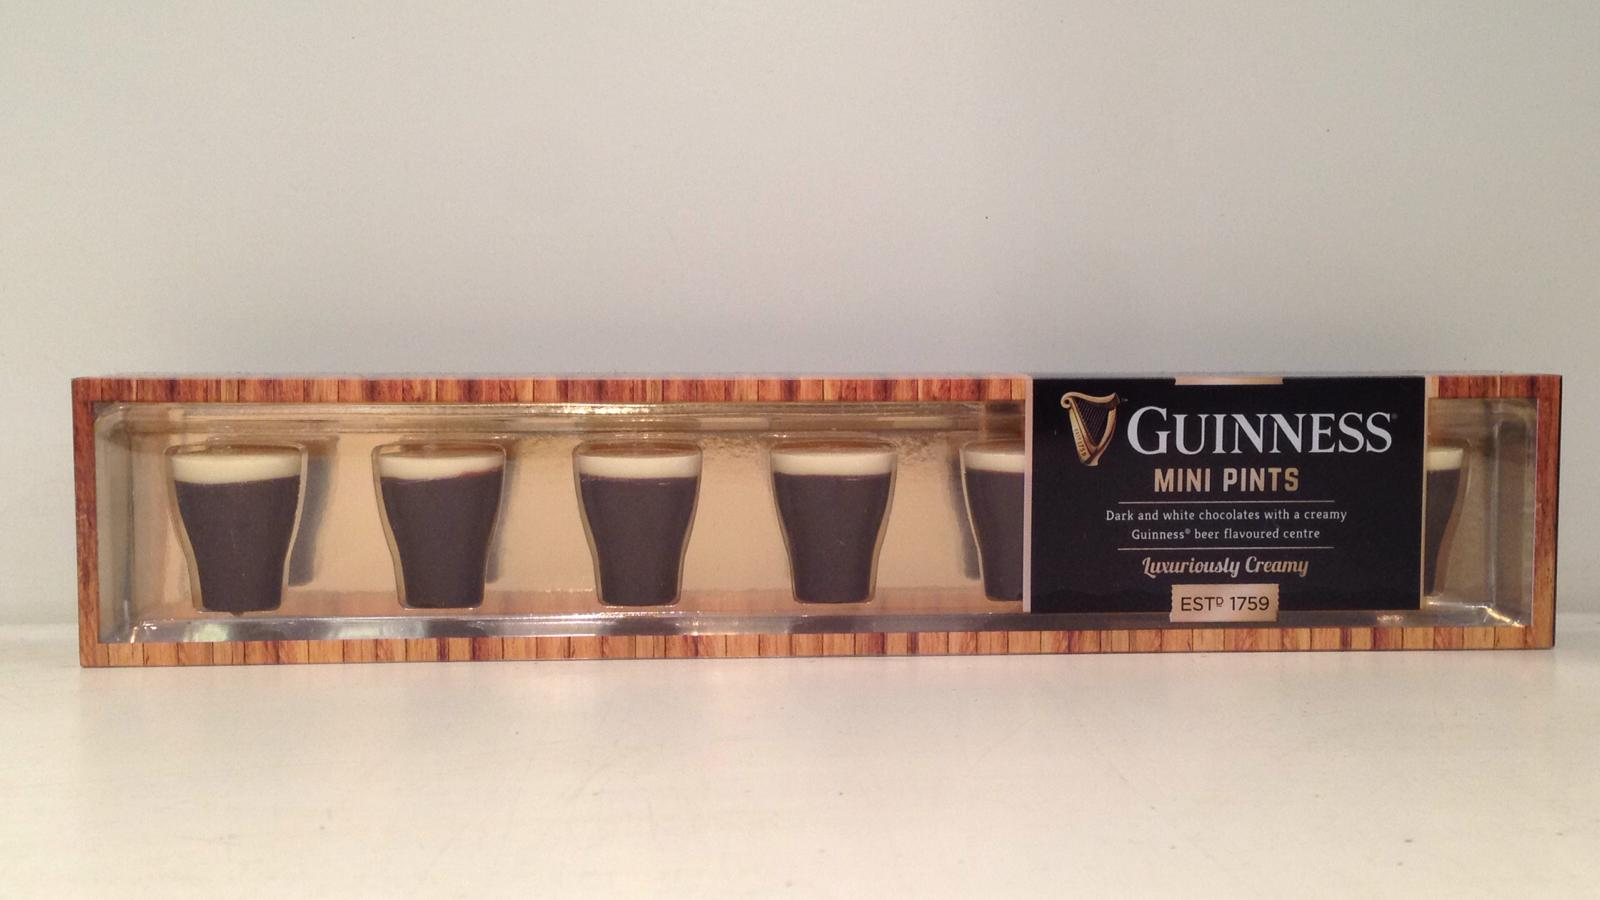 Guinness Mini pints 65g